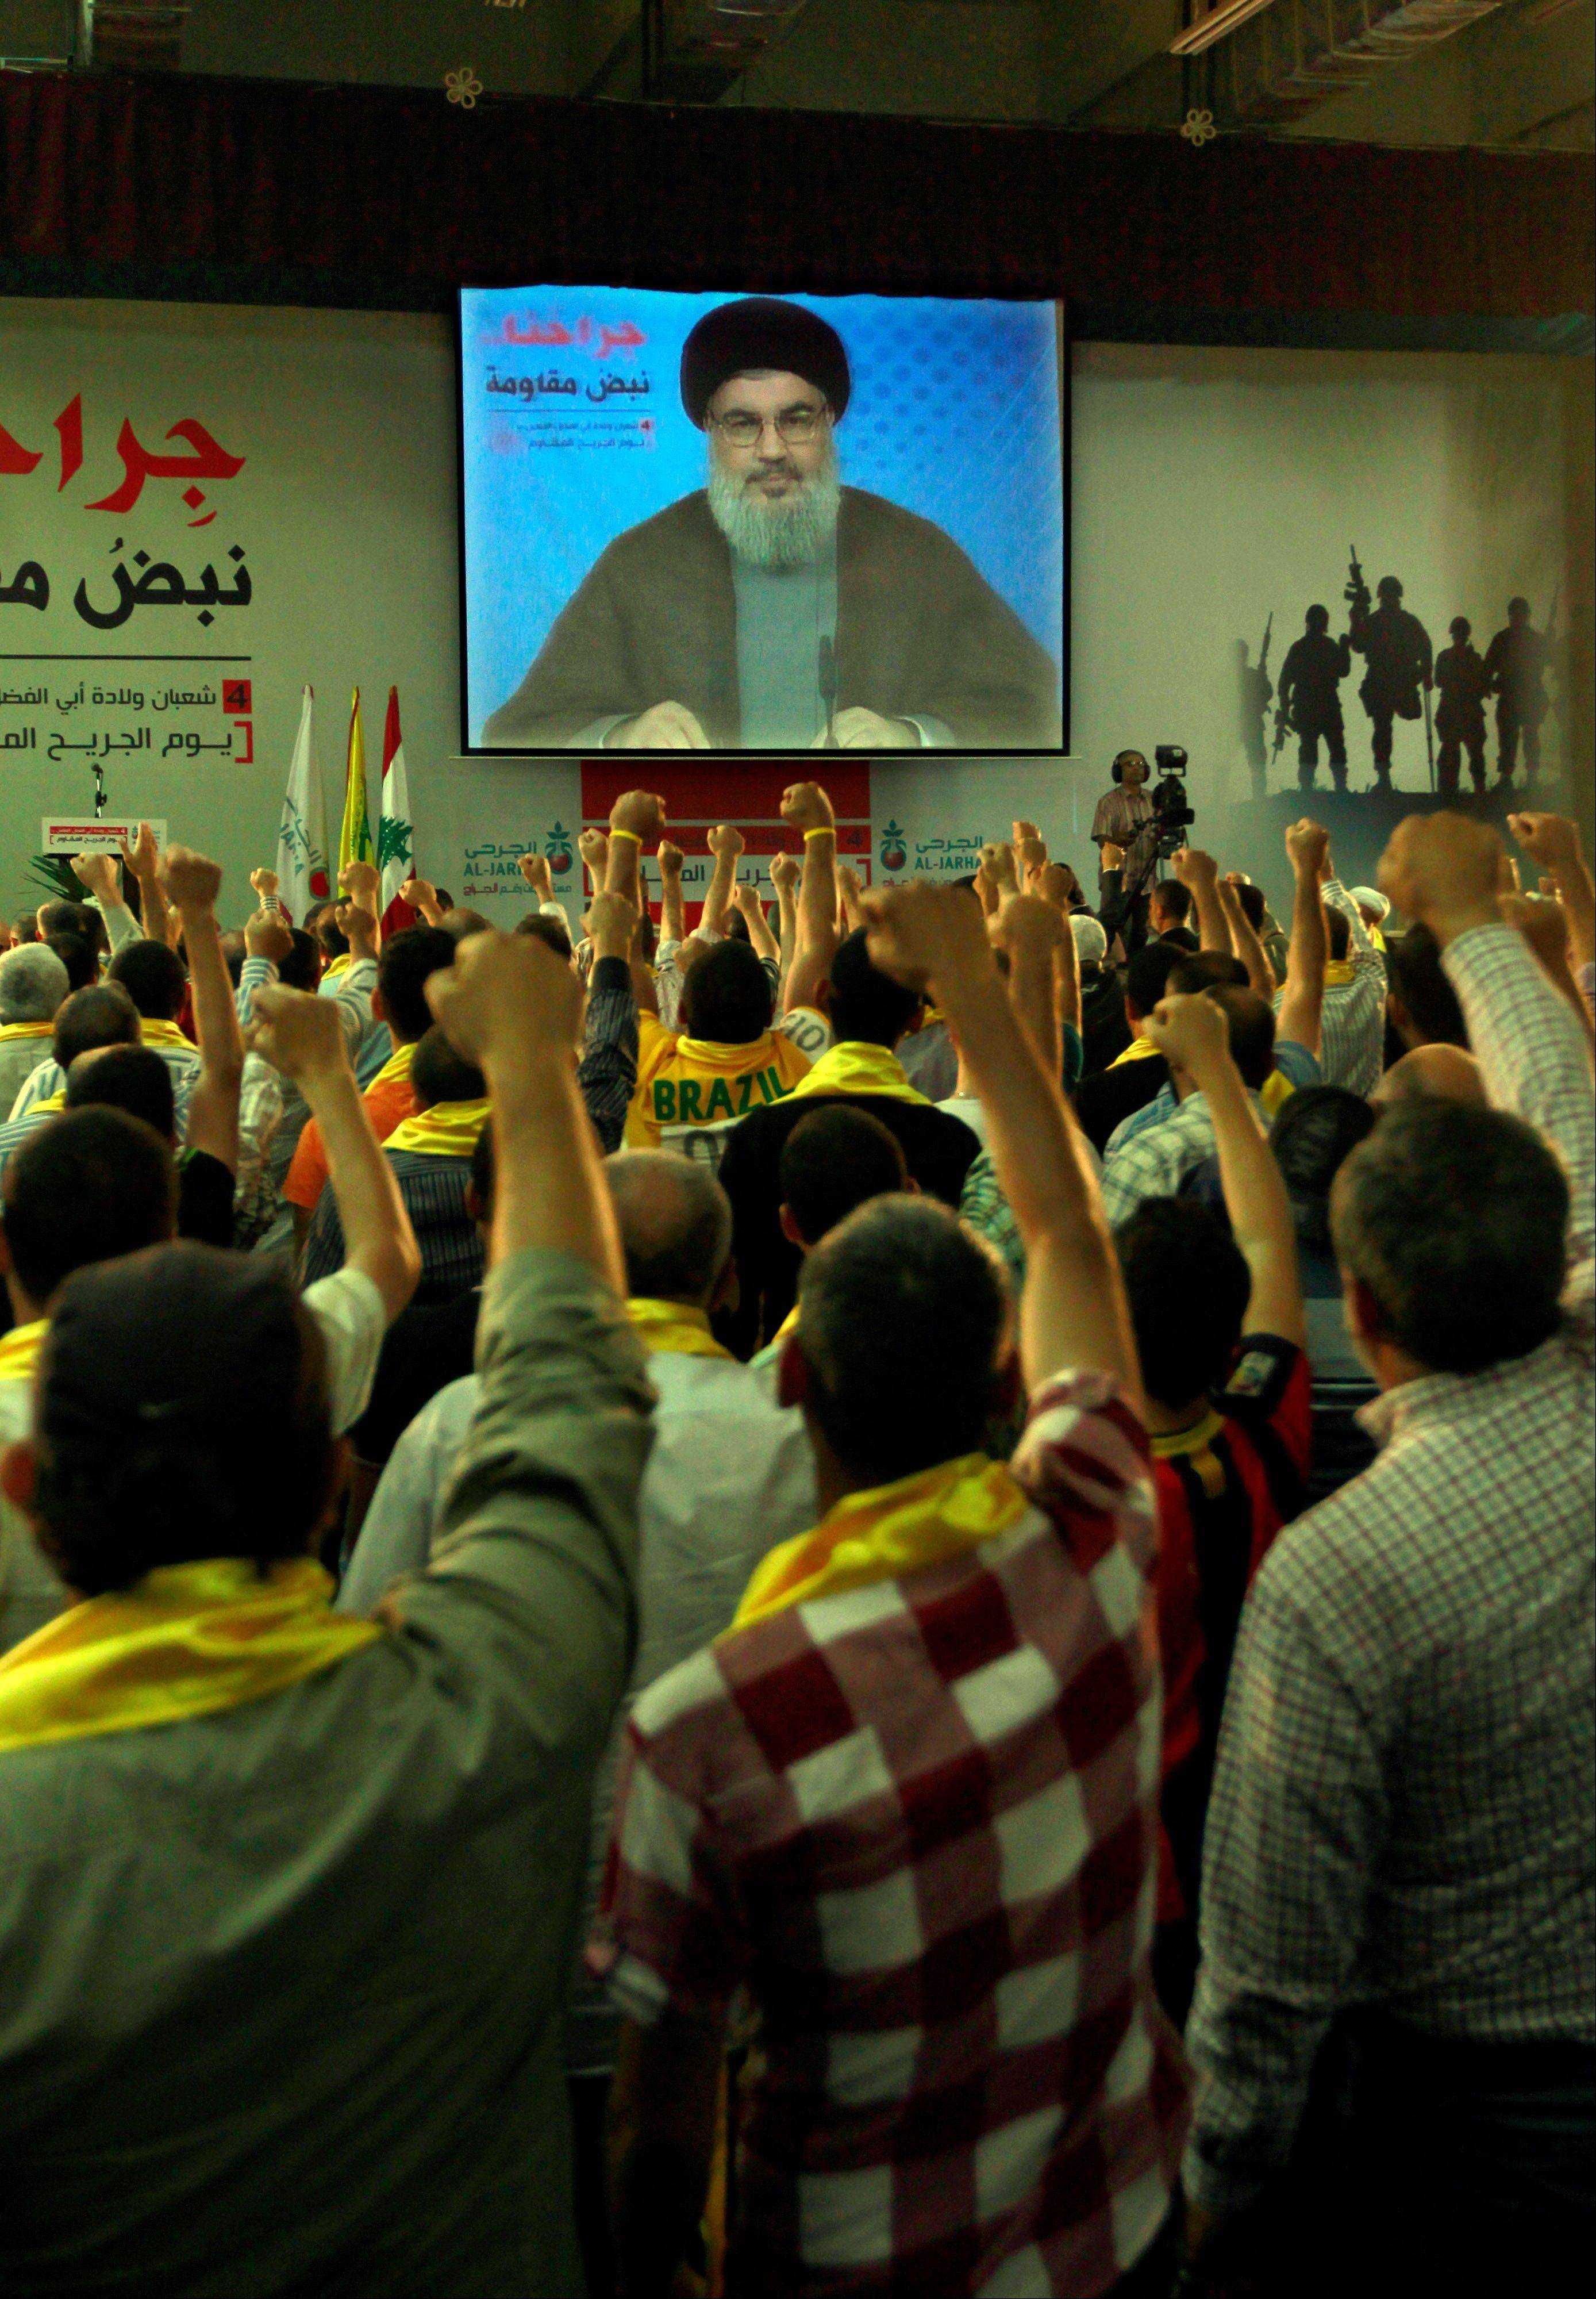 Hezbollah supporters raise their hands in salute as Hezbollah leader Sheik Hassan Nasrallah speaks on a screen Friday via a video link from a secret place, in the southern suburb of Beirut, Lebanon. Nasal said his group will continue to fight in Syria.